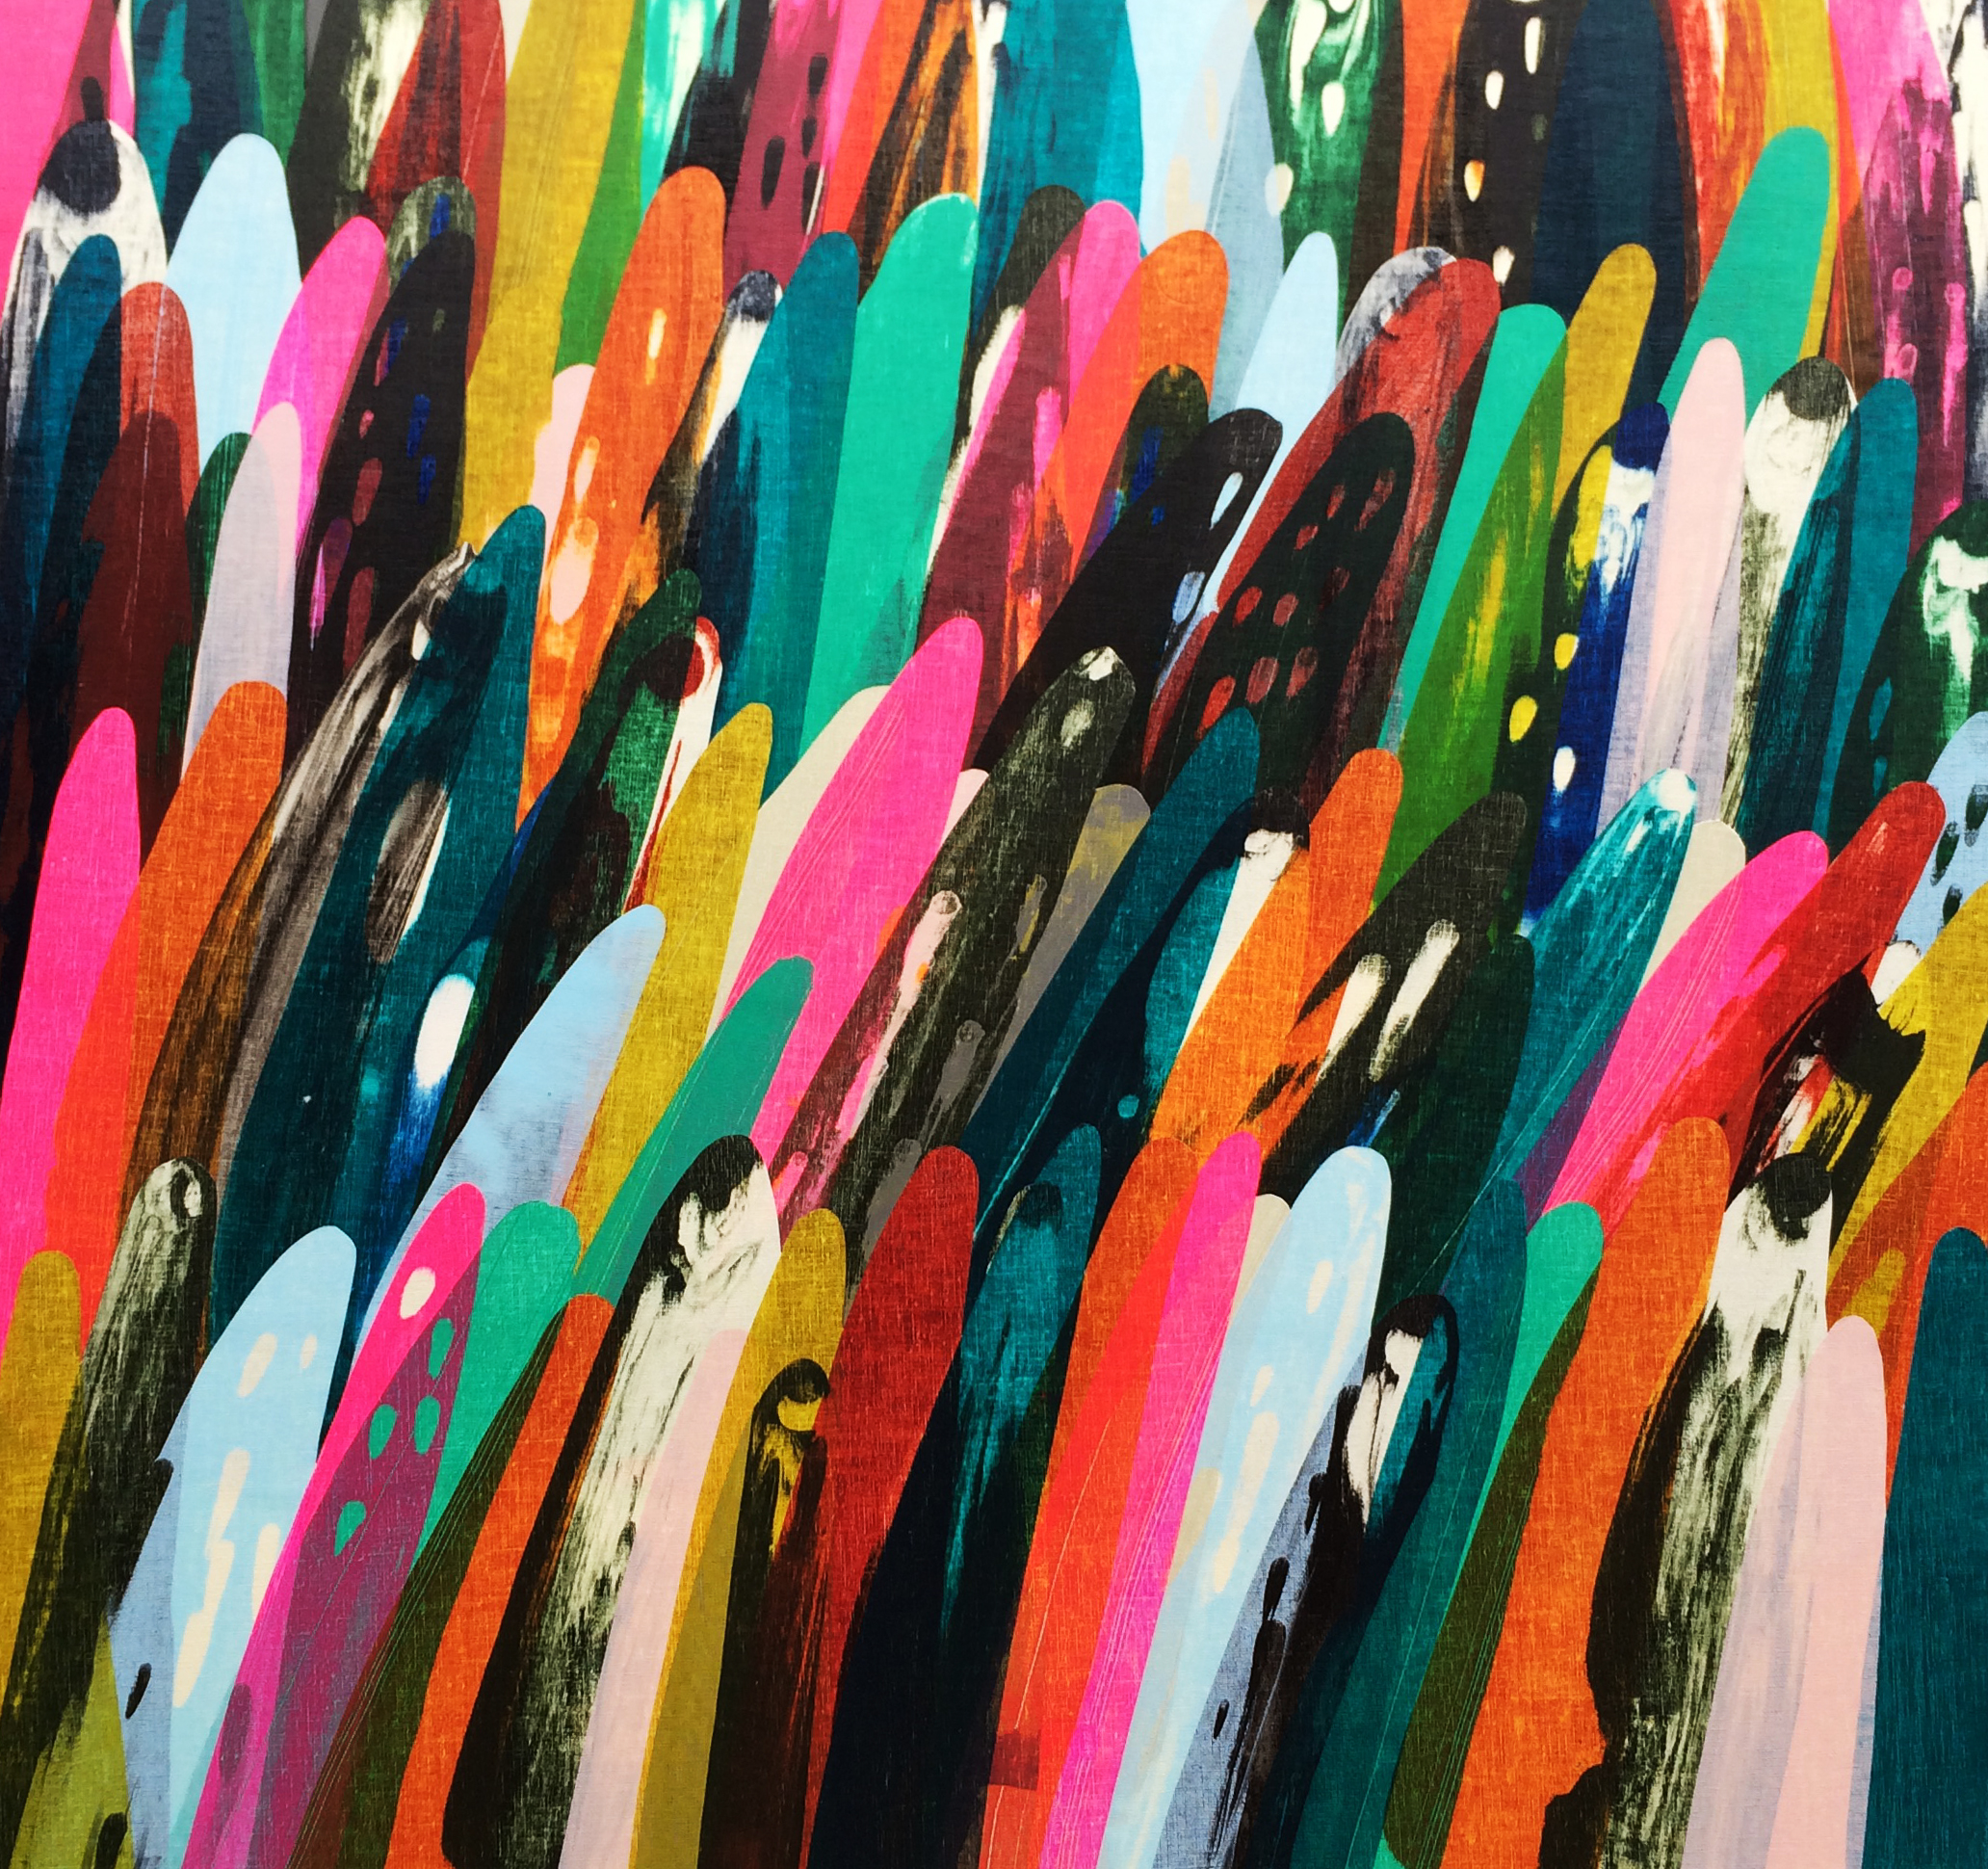 Abstract artwork containing brightly-coloured brushstrokes and shapes